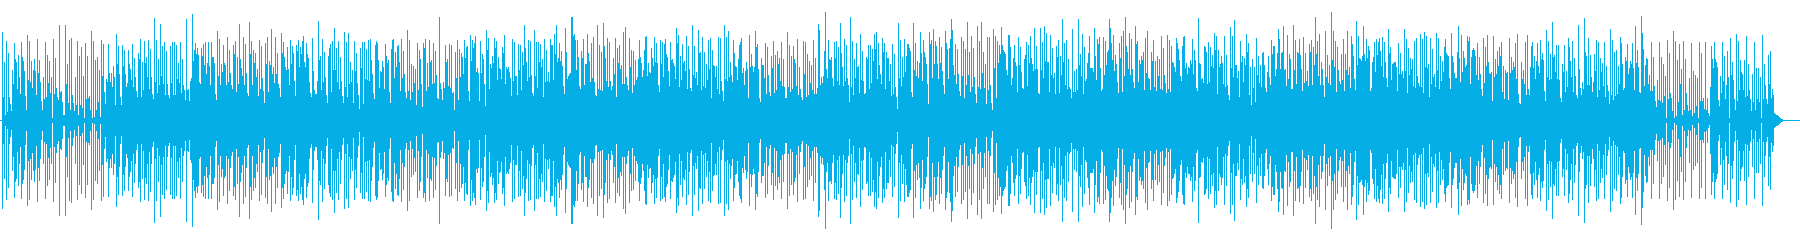 Light and pretty pop music's reproduced waveform